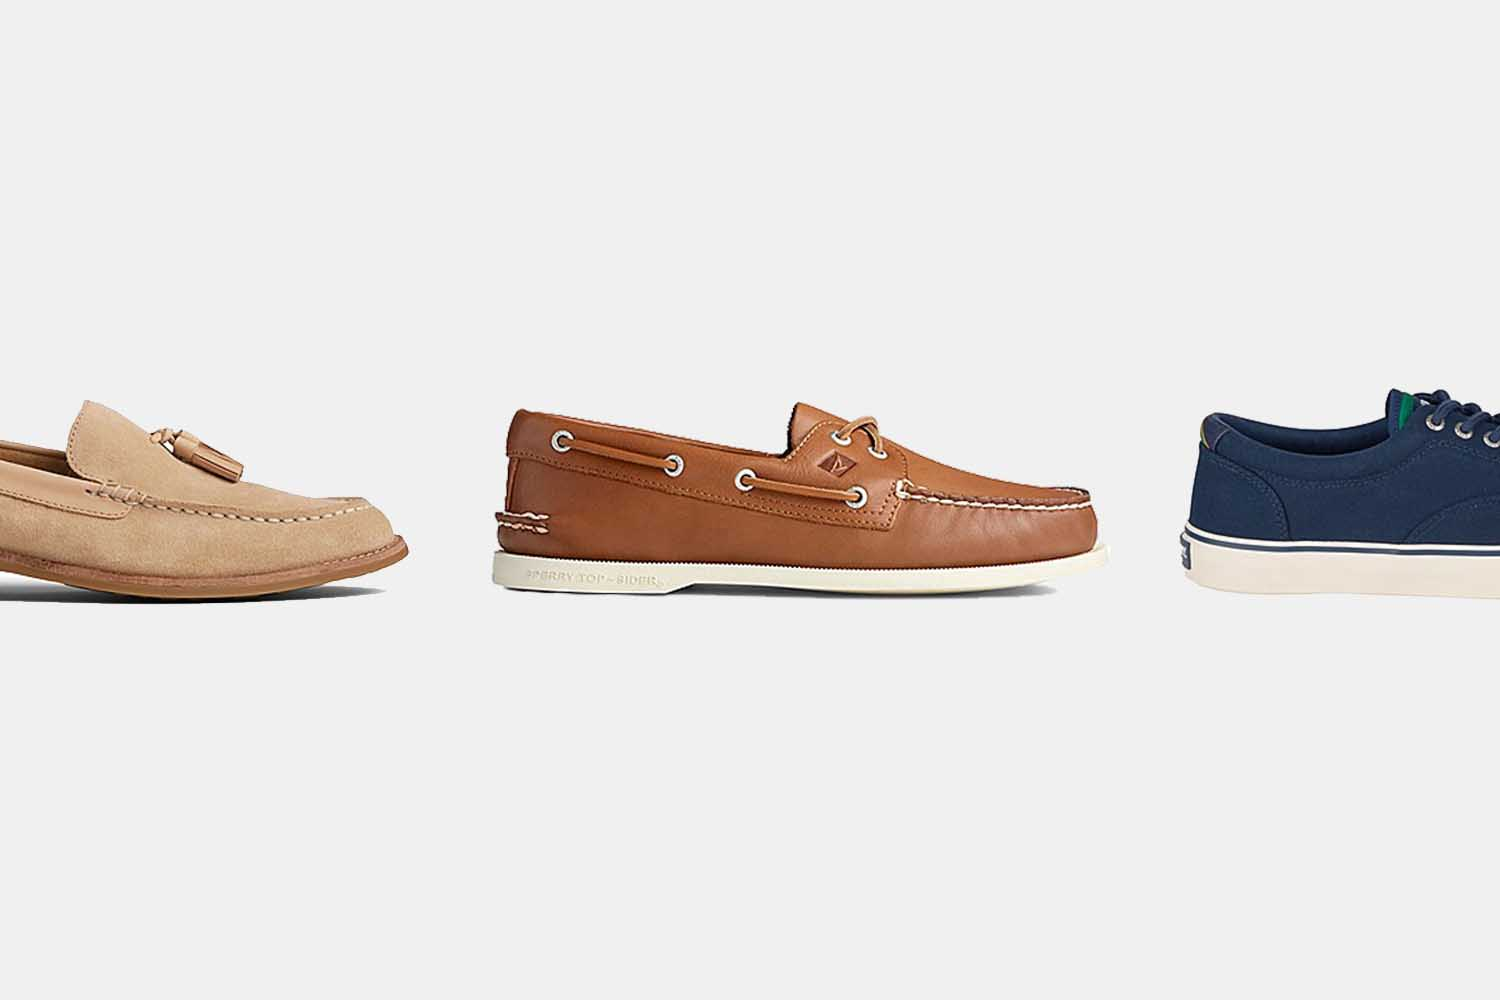 Deal: It's Boat (Shoe) Season and You